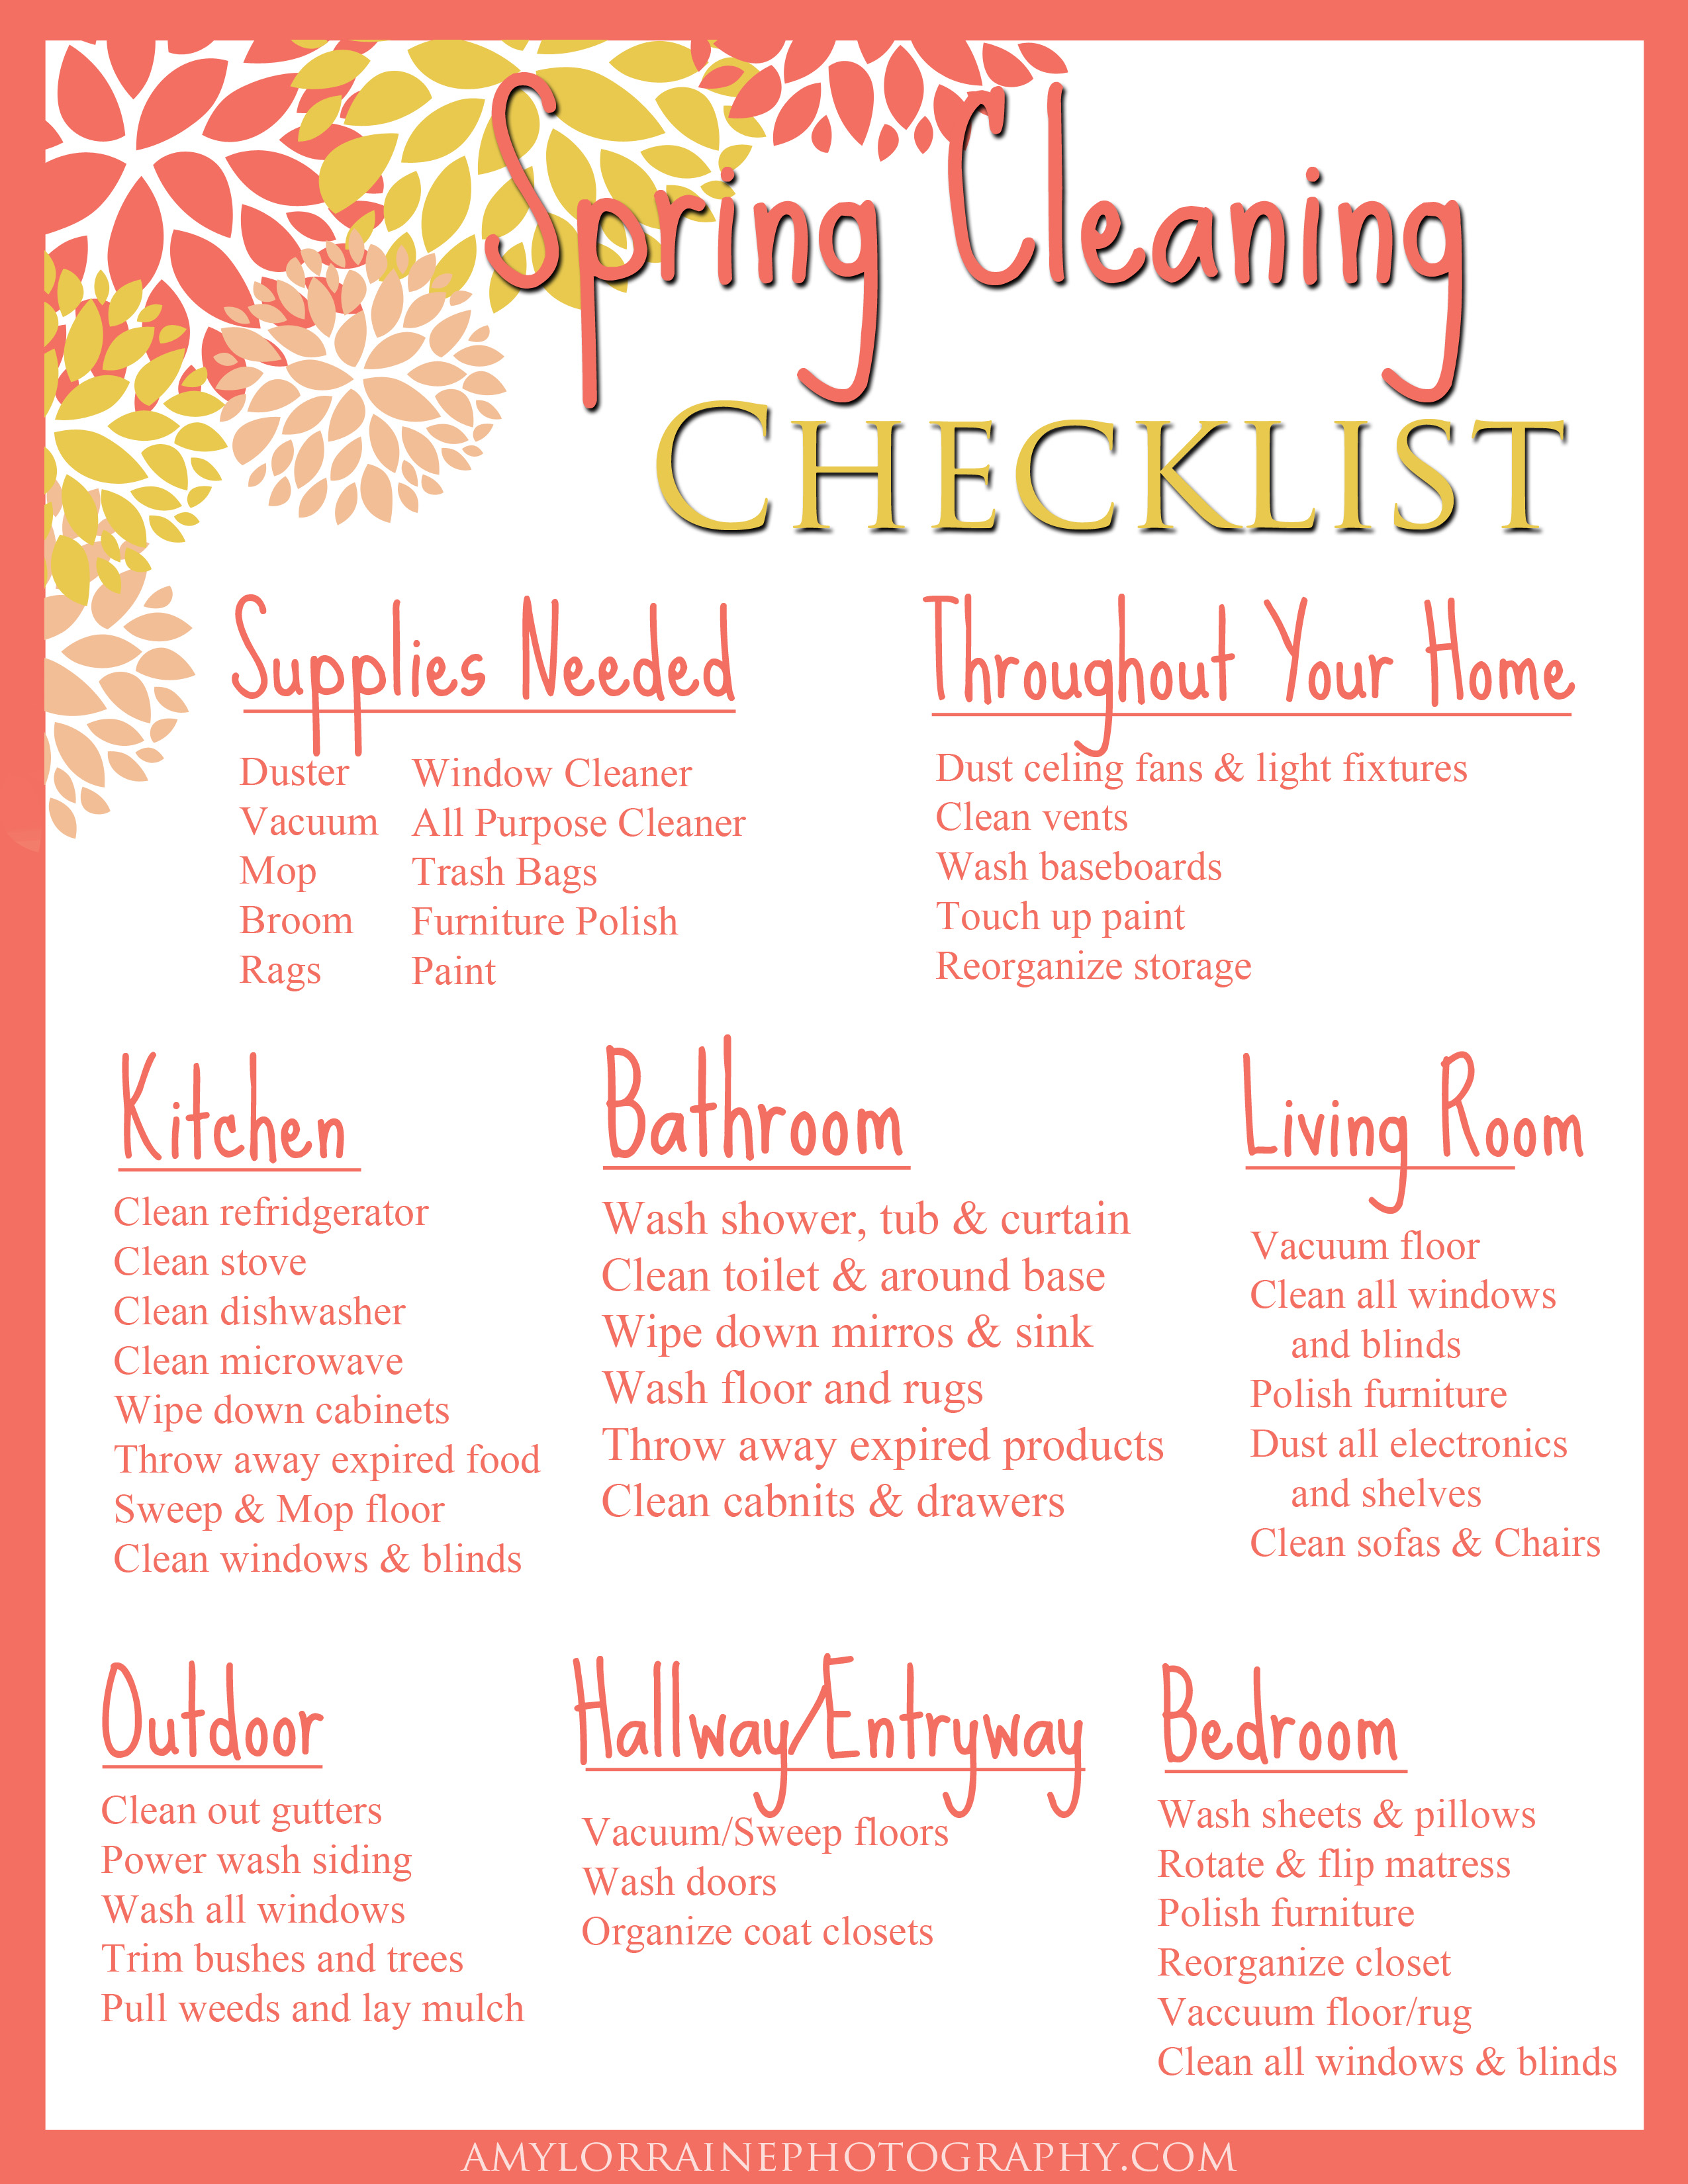 Free Printable Spring Cleaning Checklist | Southern Maryland Family  Photographer